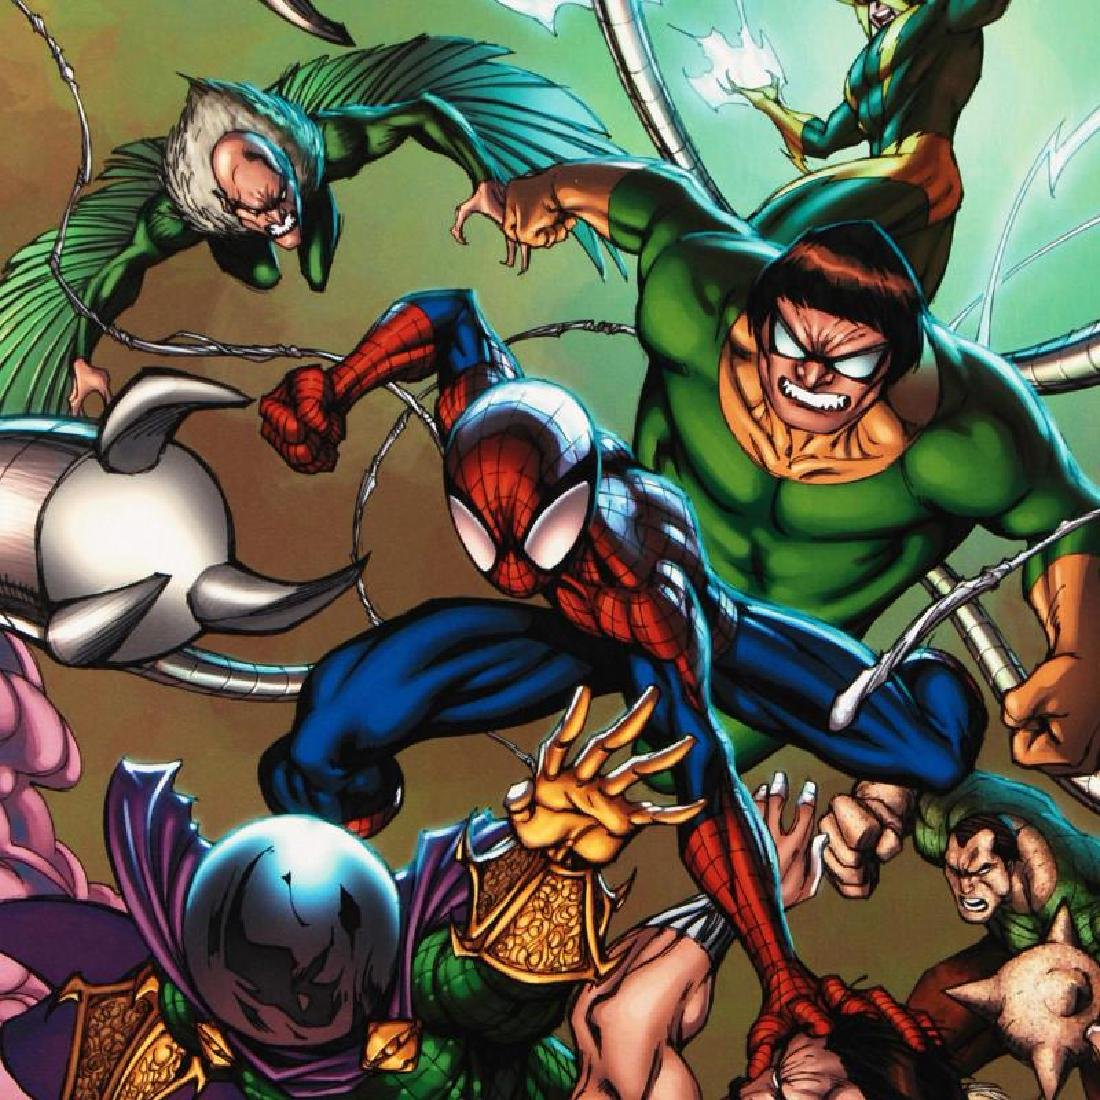 Marvel Adventures: Spider-Man #17 by Marvel Comics - 2